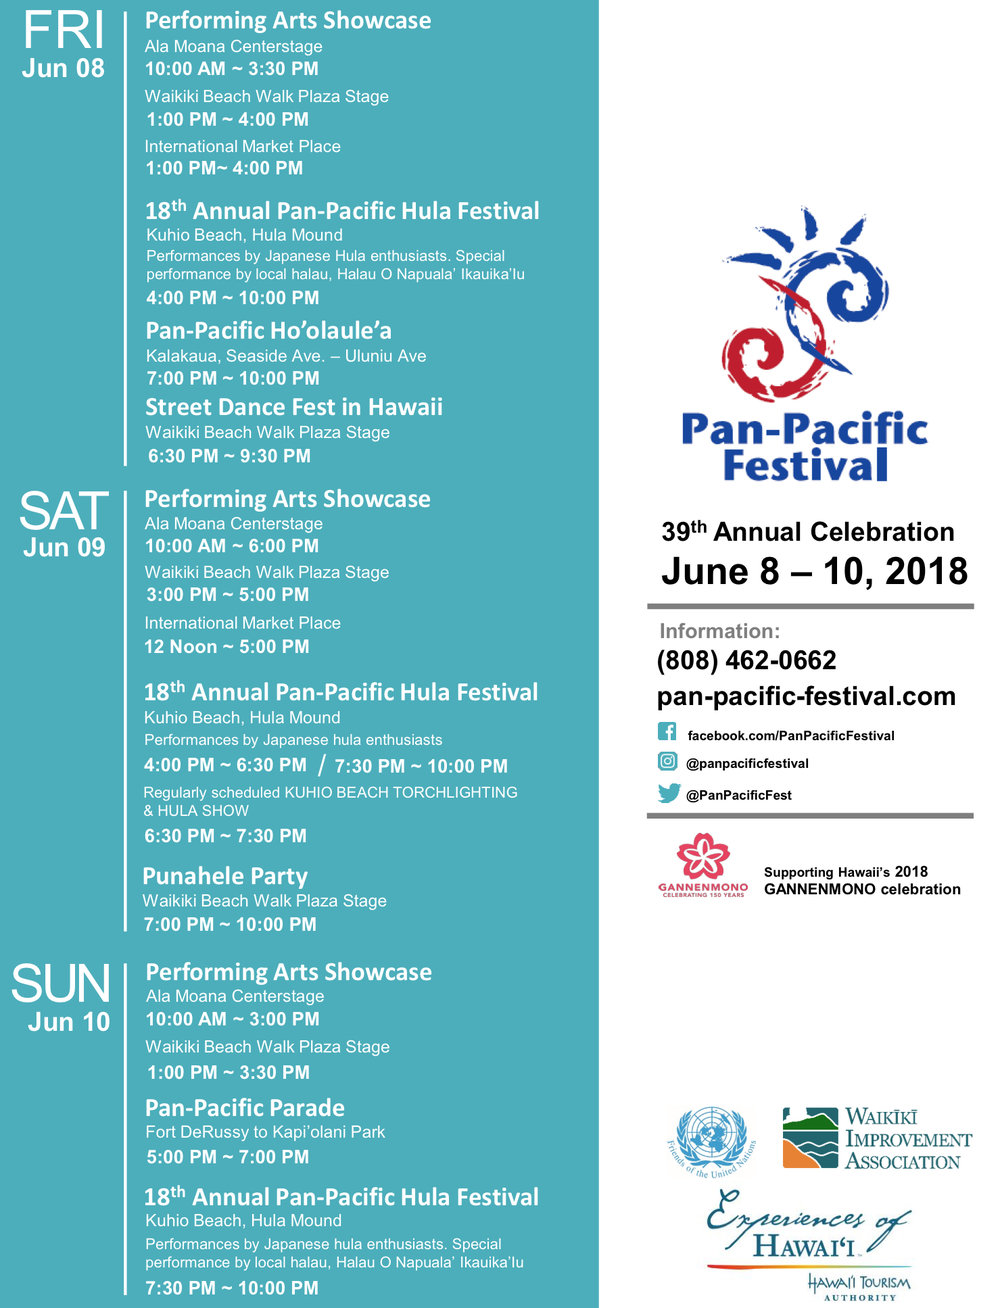 pan-pacific fest schedule 6-8 - 10..jpg